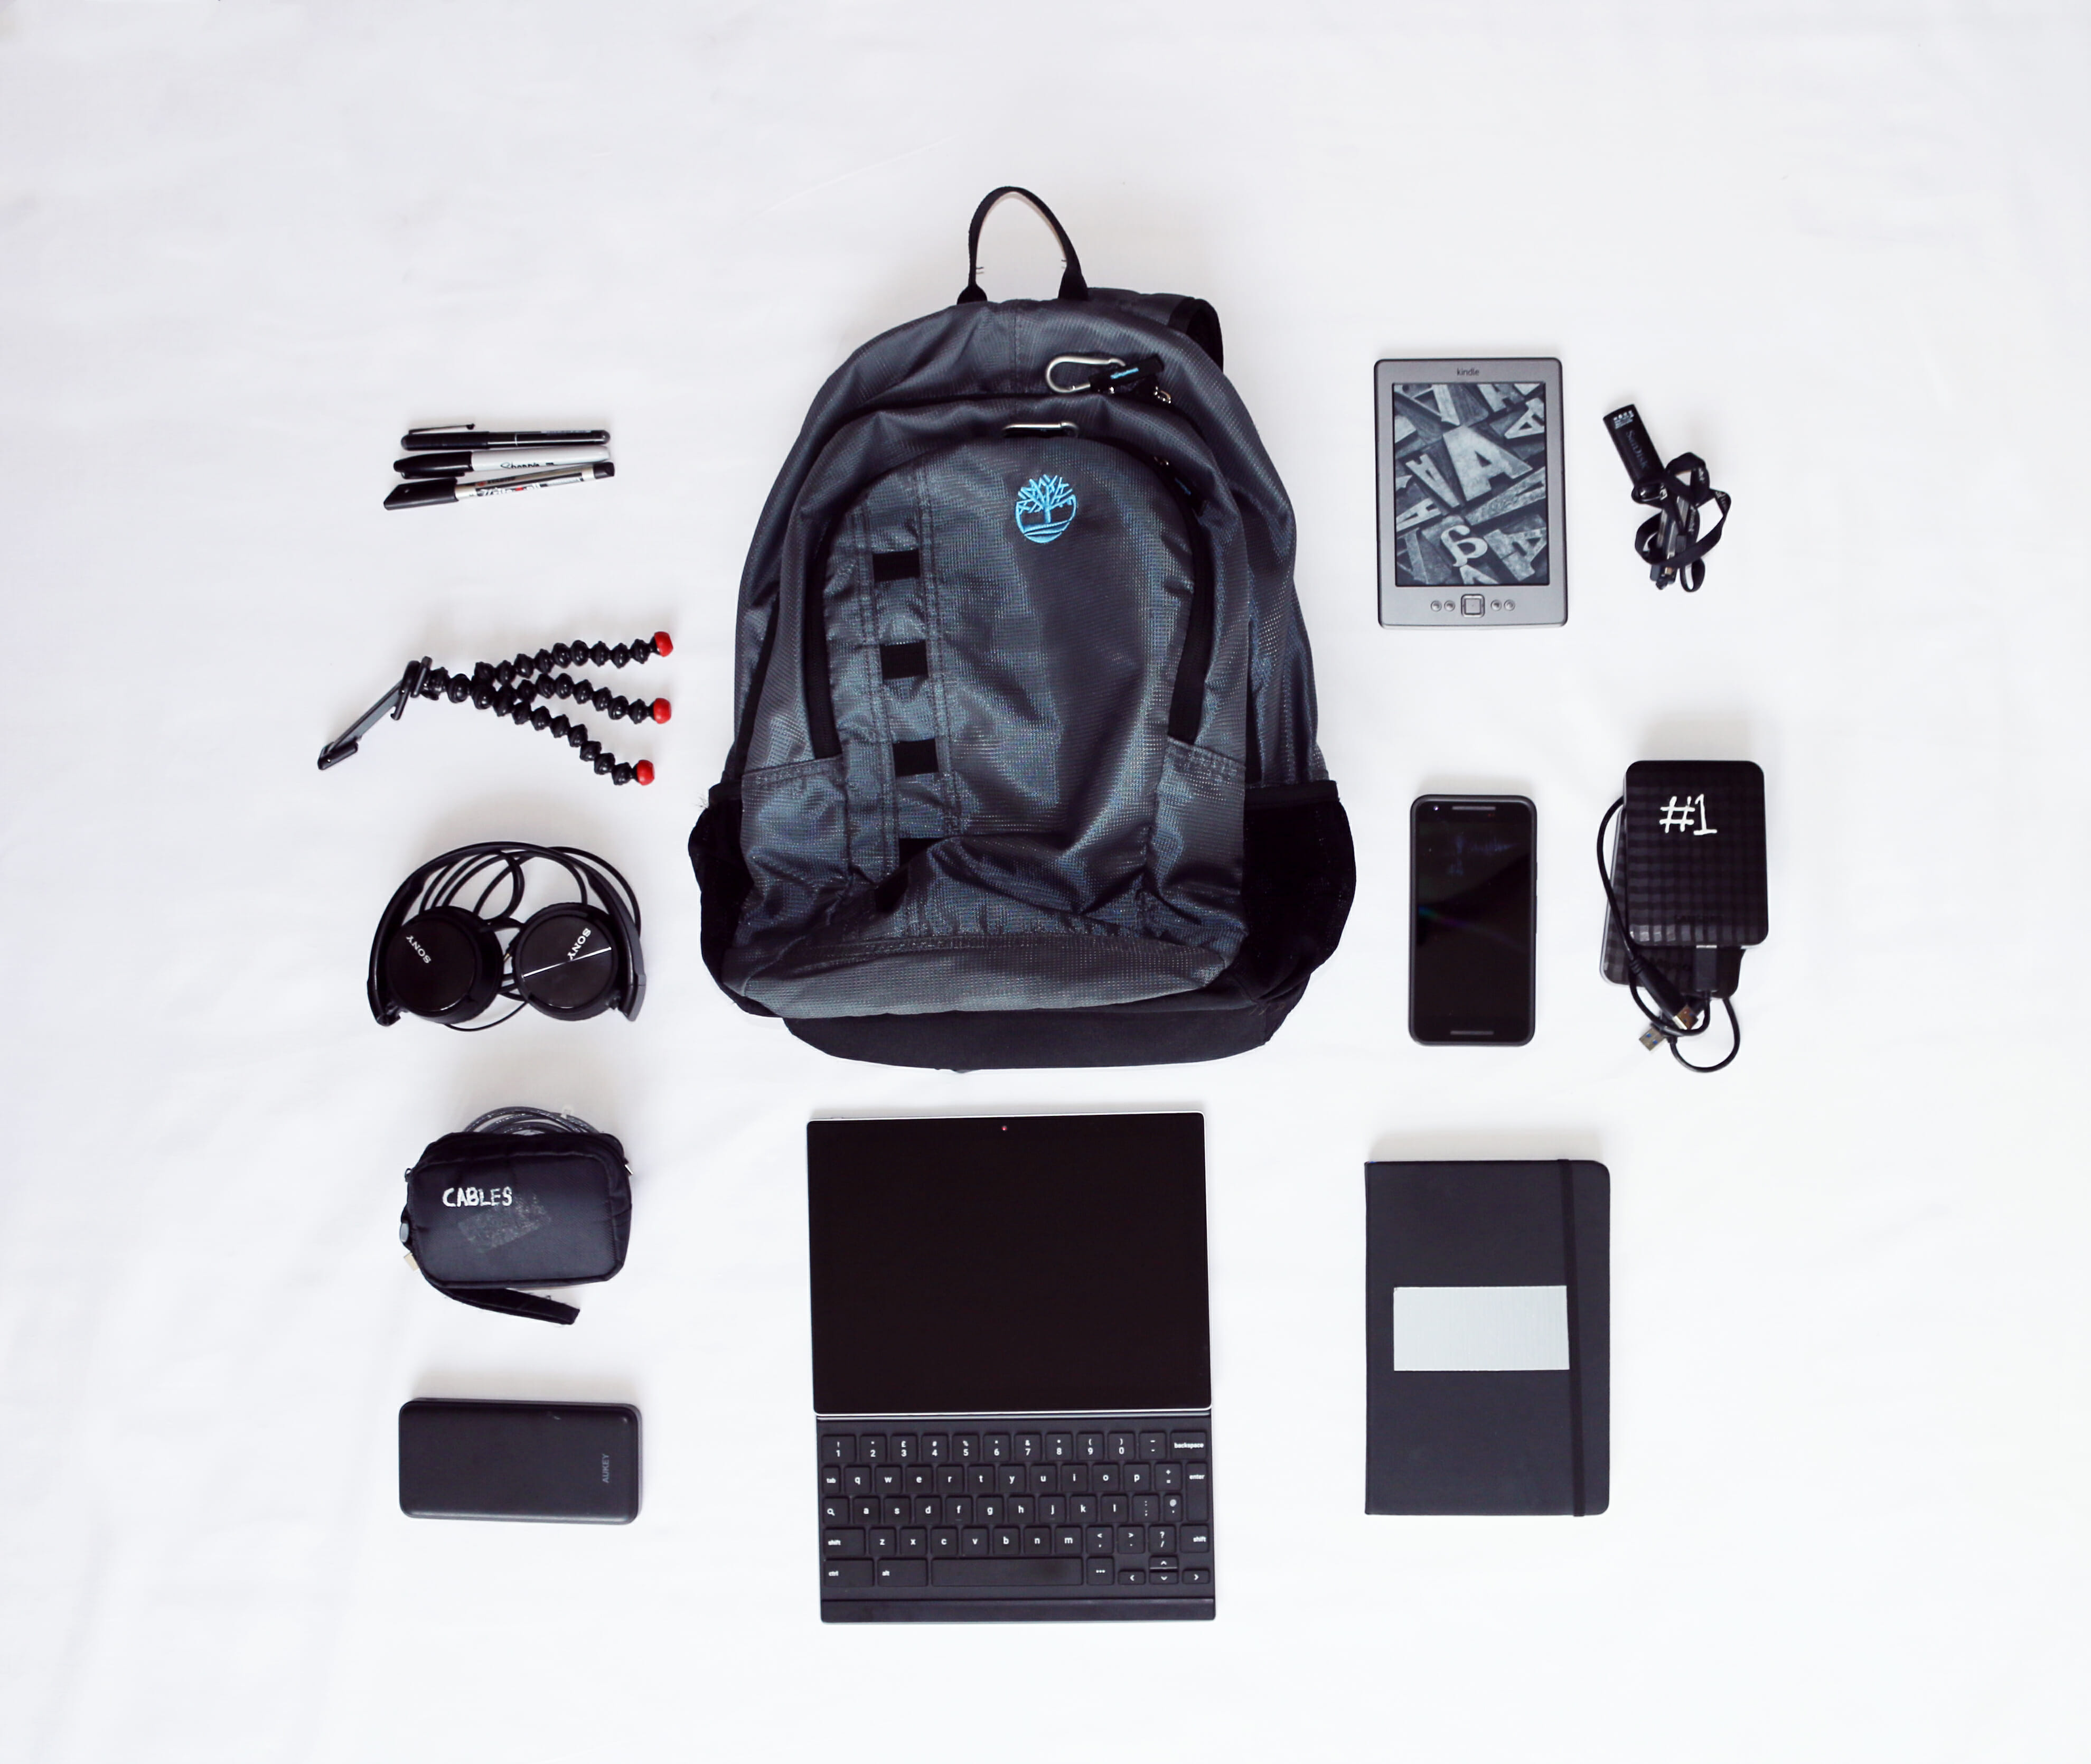 Developer Bag collection